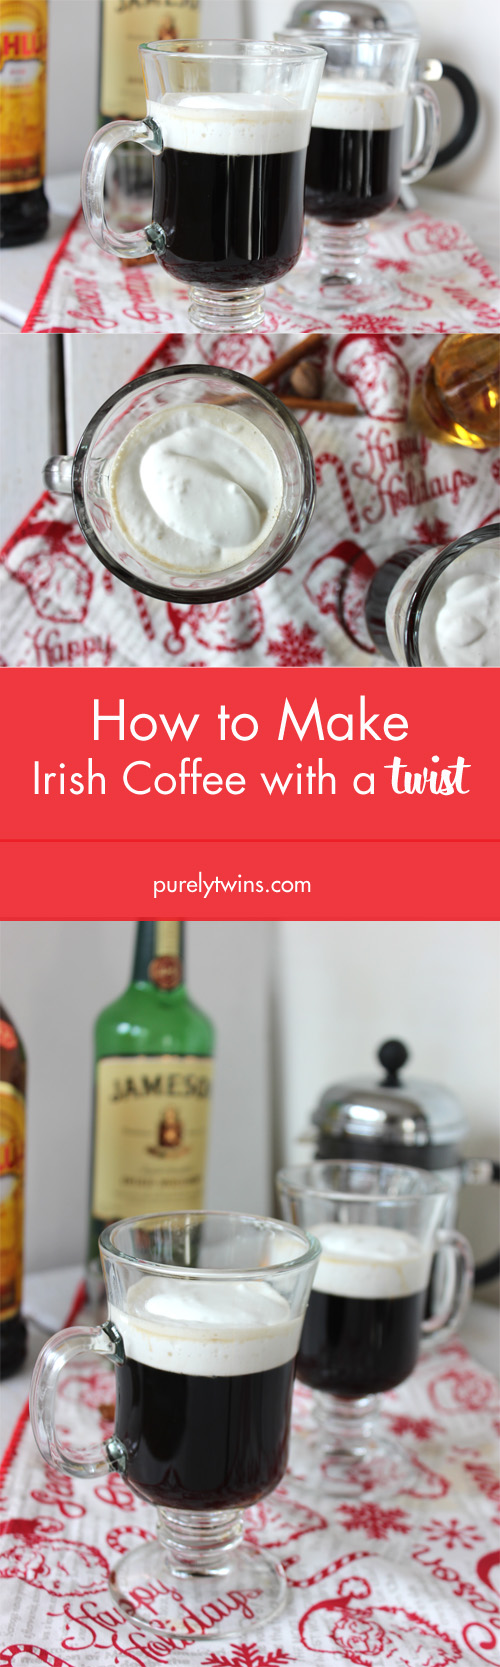 You can't go wrong with a  Irish Coffee to warm up your insides! Especially when it can be ready in 10 minutes and made with kahlua instread of brown sugar. A fun twist on irish coffee recipe that's perfect for  St. Patrick's Day celebrations or any cold chilly night.